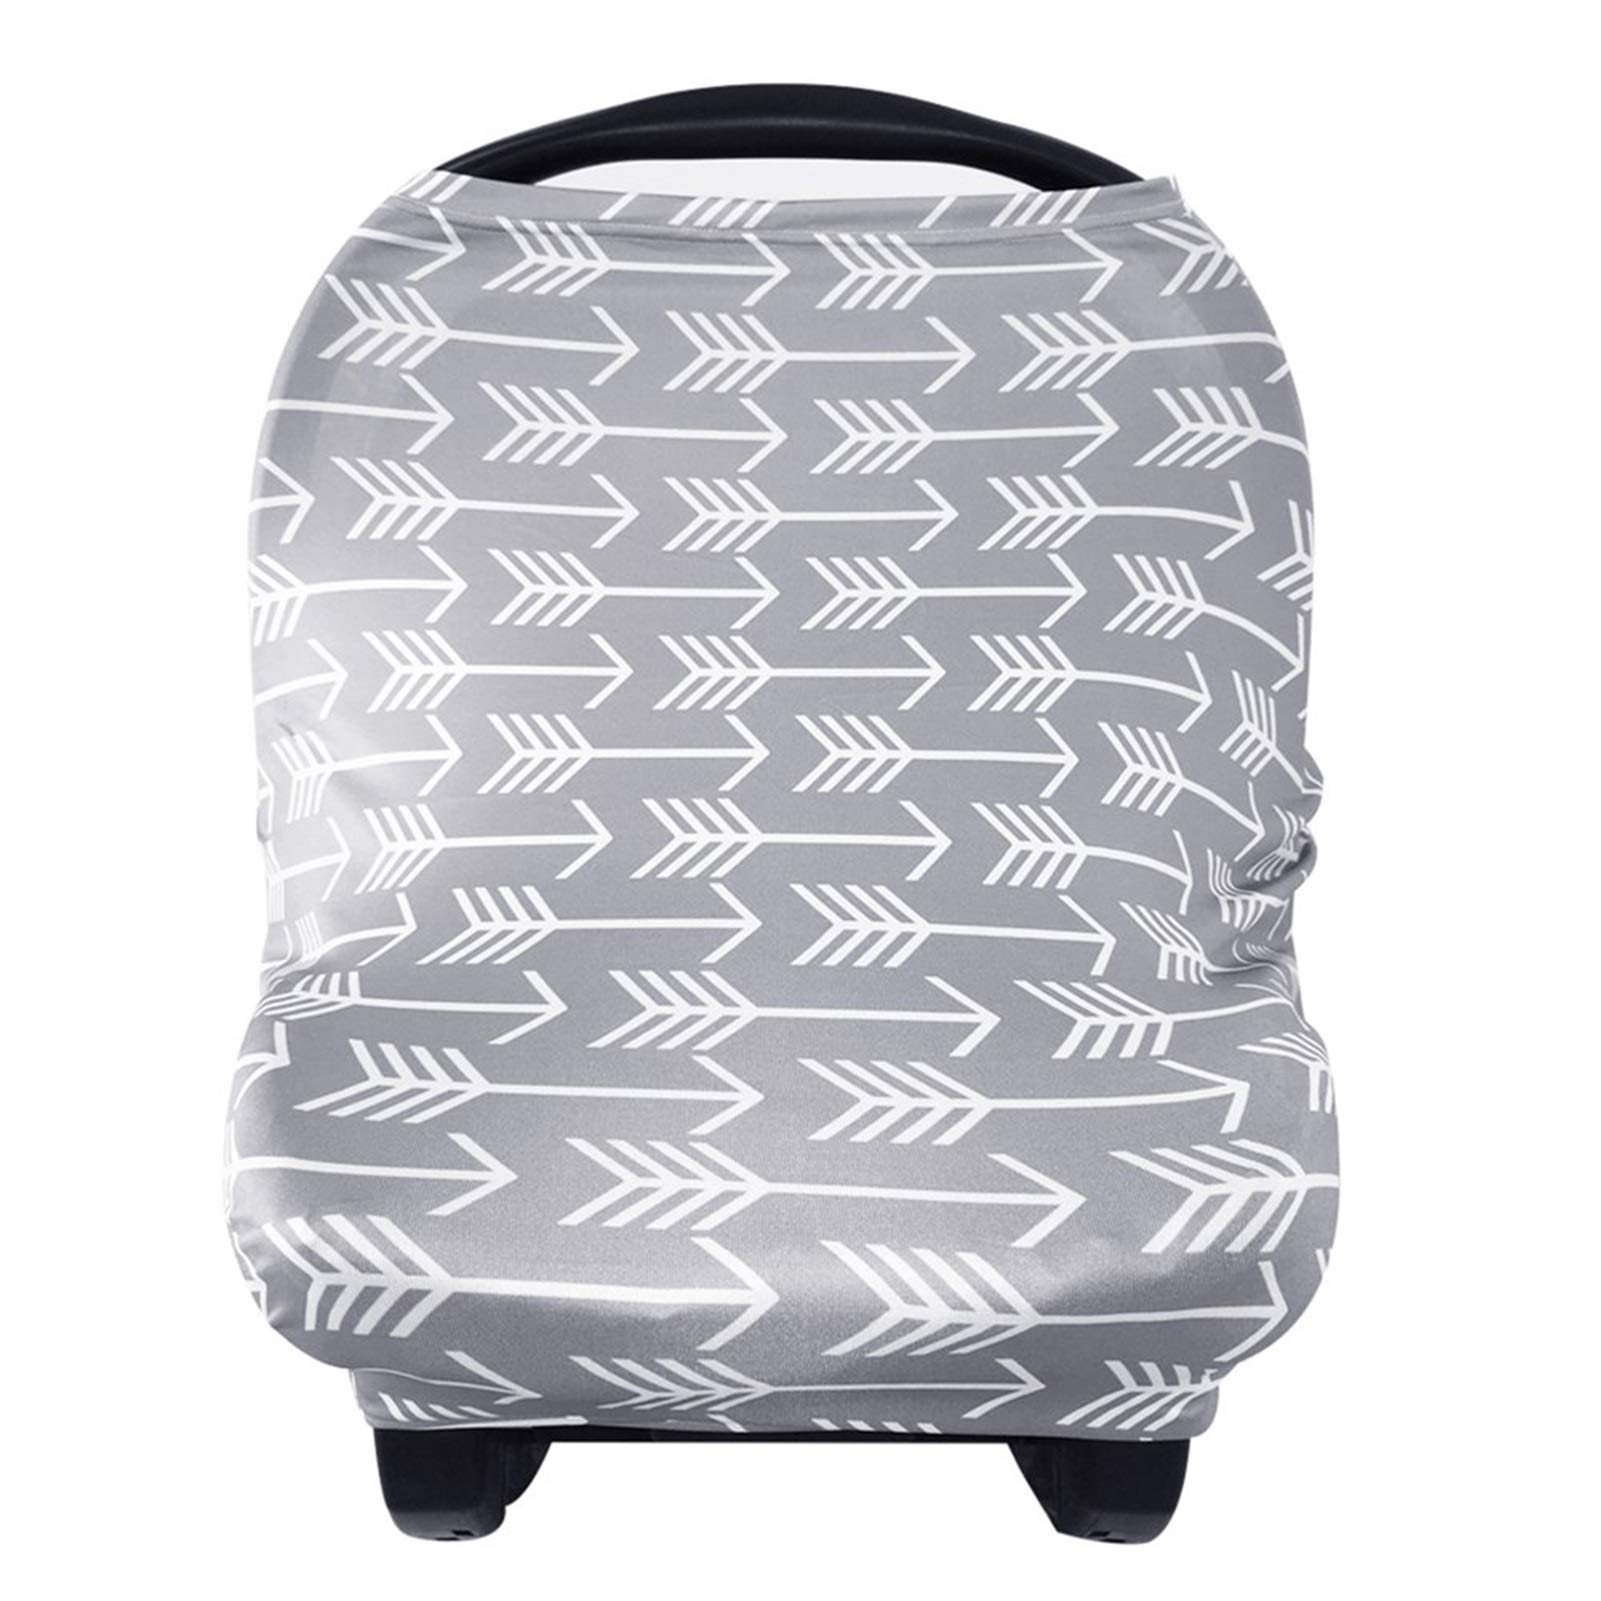 Nursing Cover Breastfeeding Scarf - Baby Car Seat Covers, Infant Stroller Cover, Carseat Canopy for Girls and Boys by YOOFOSS